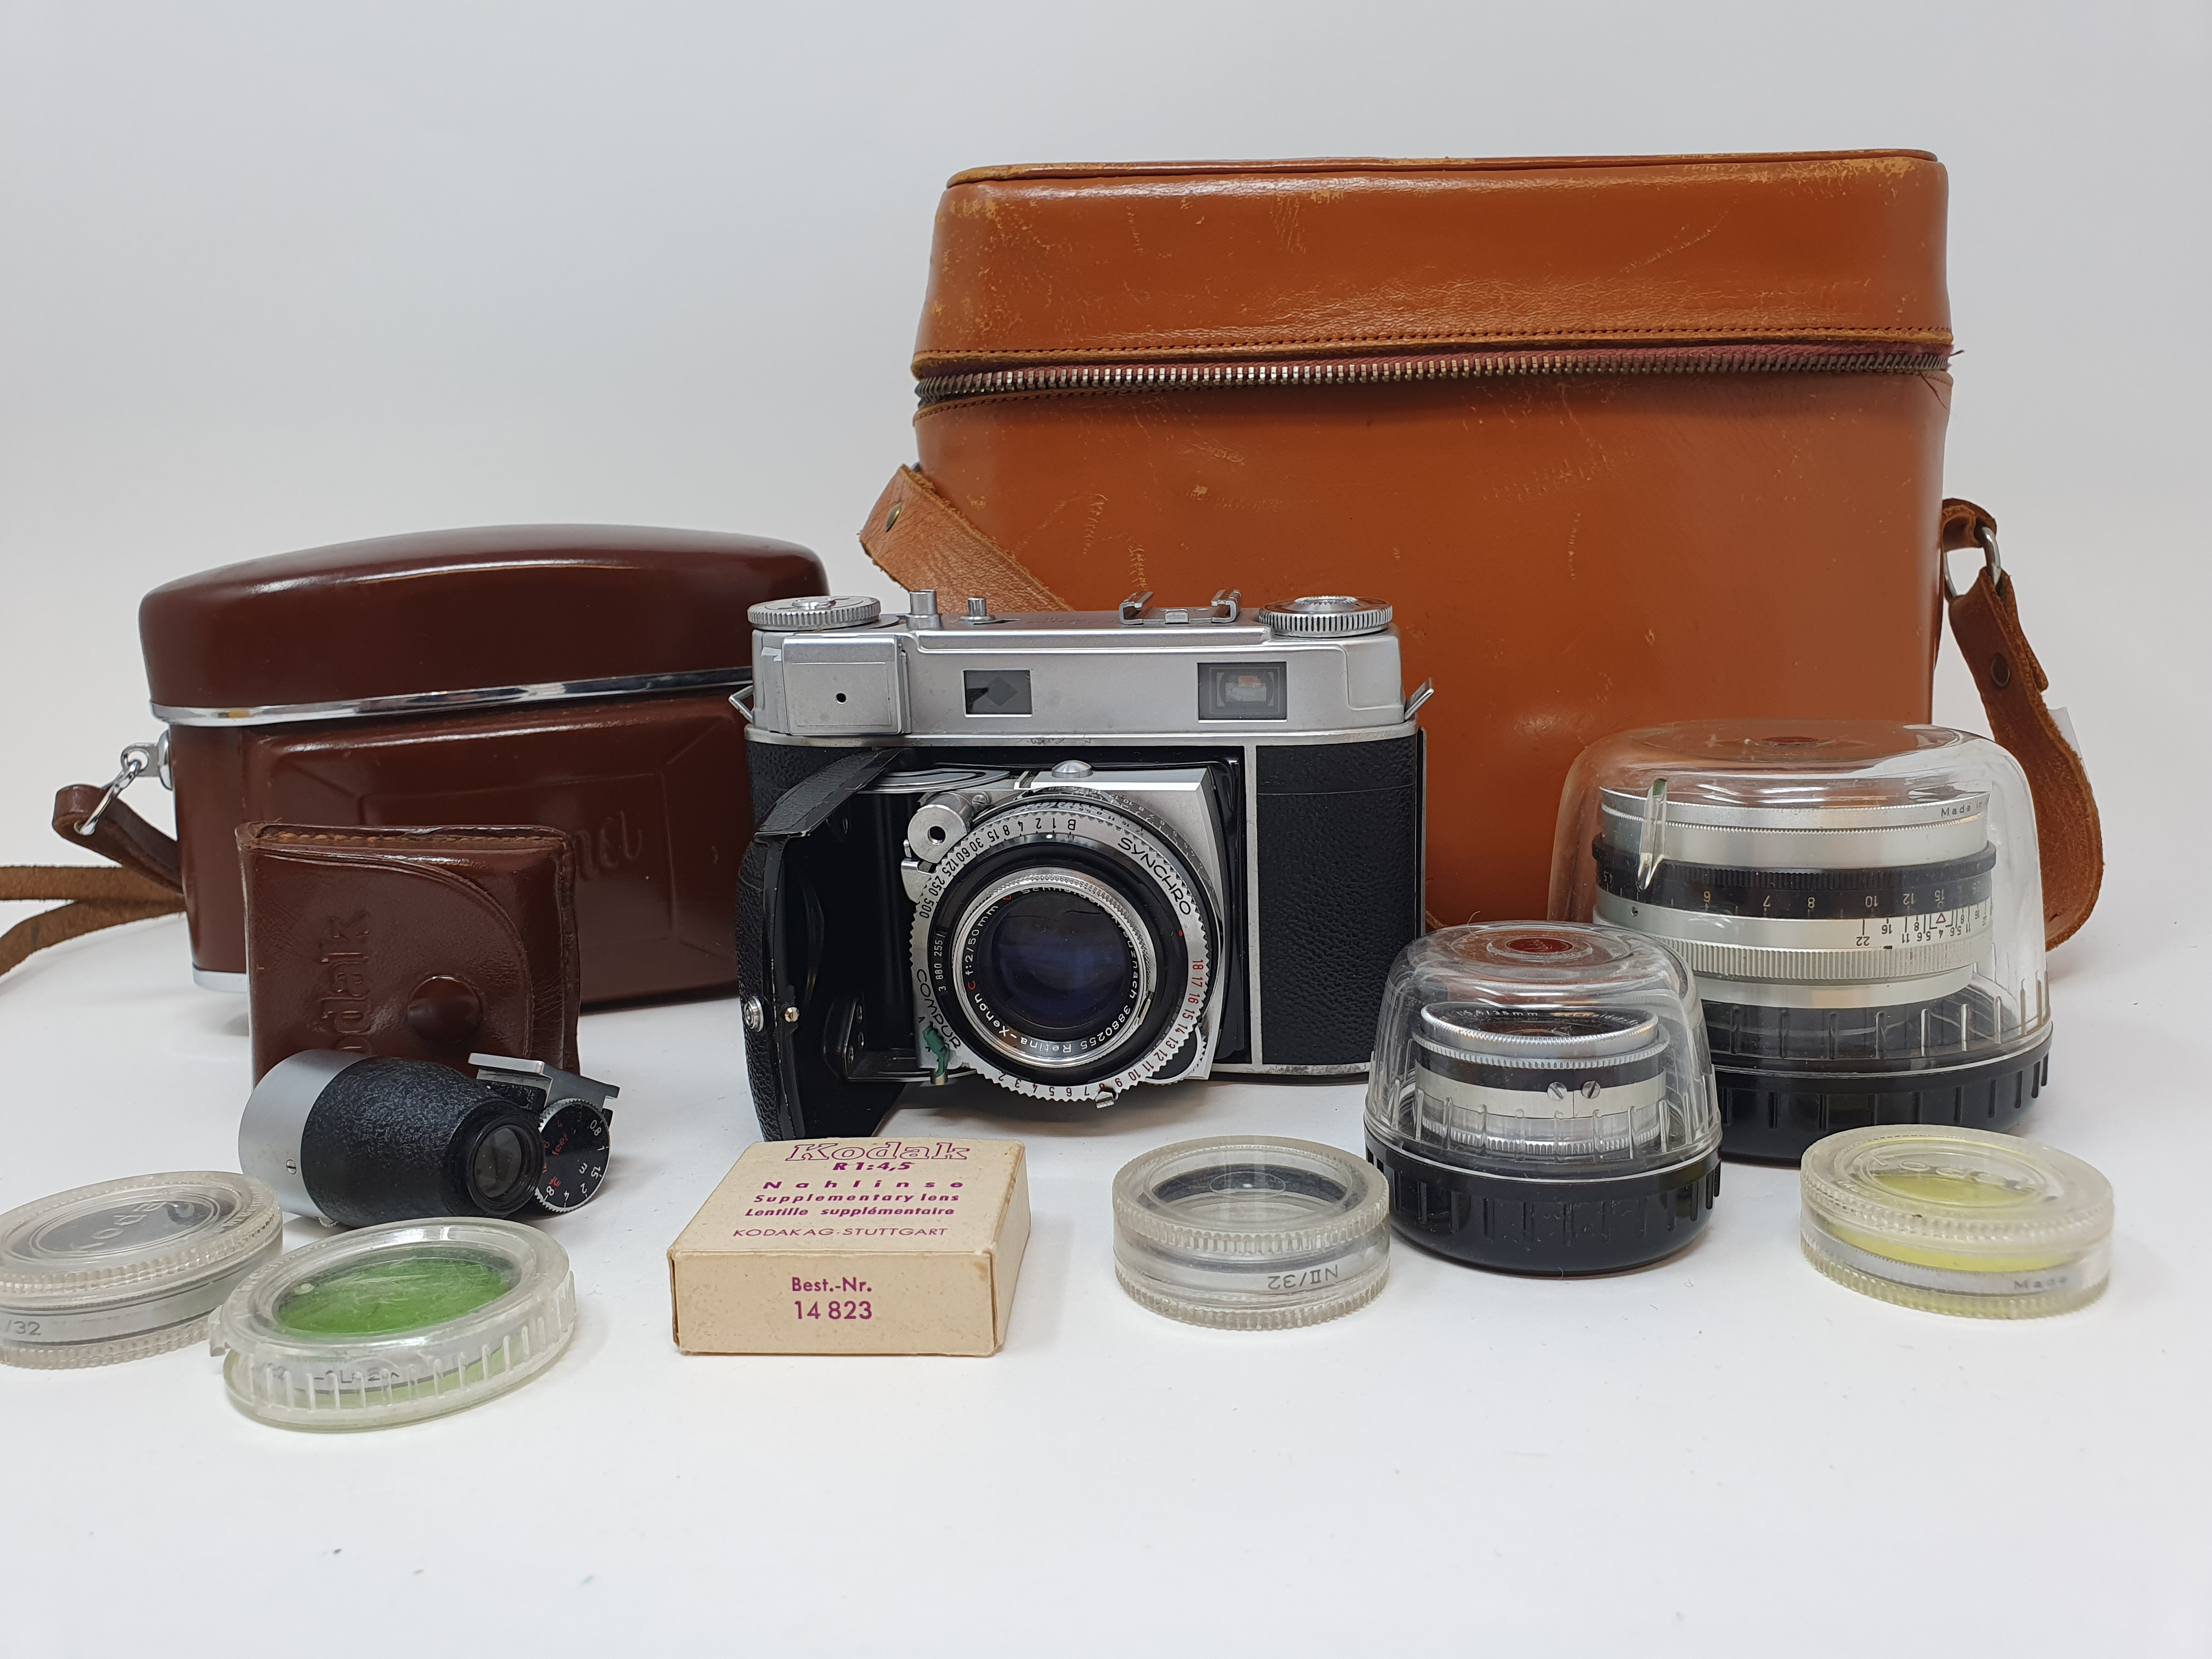 A Kodak Retina III, serial number 231293, in leather outer case, various accessories and lens, in